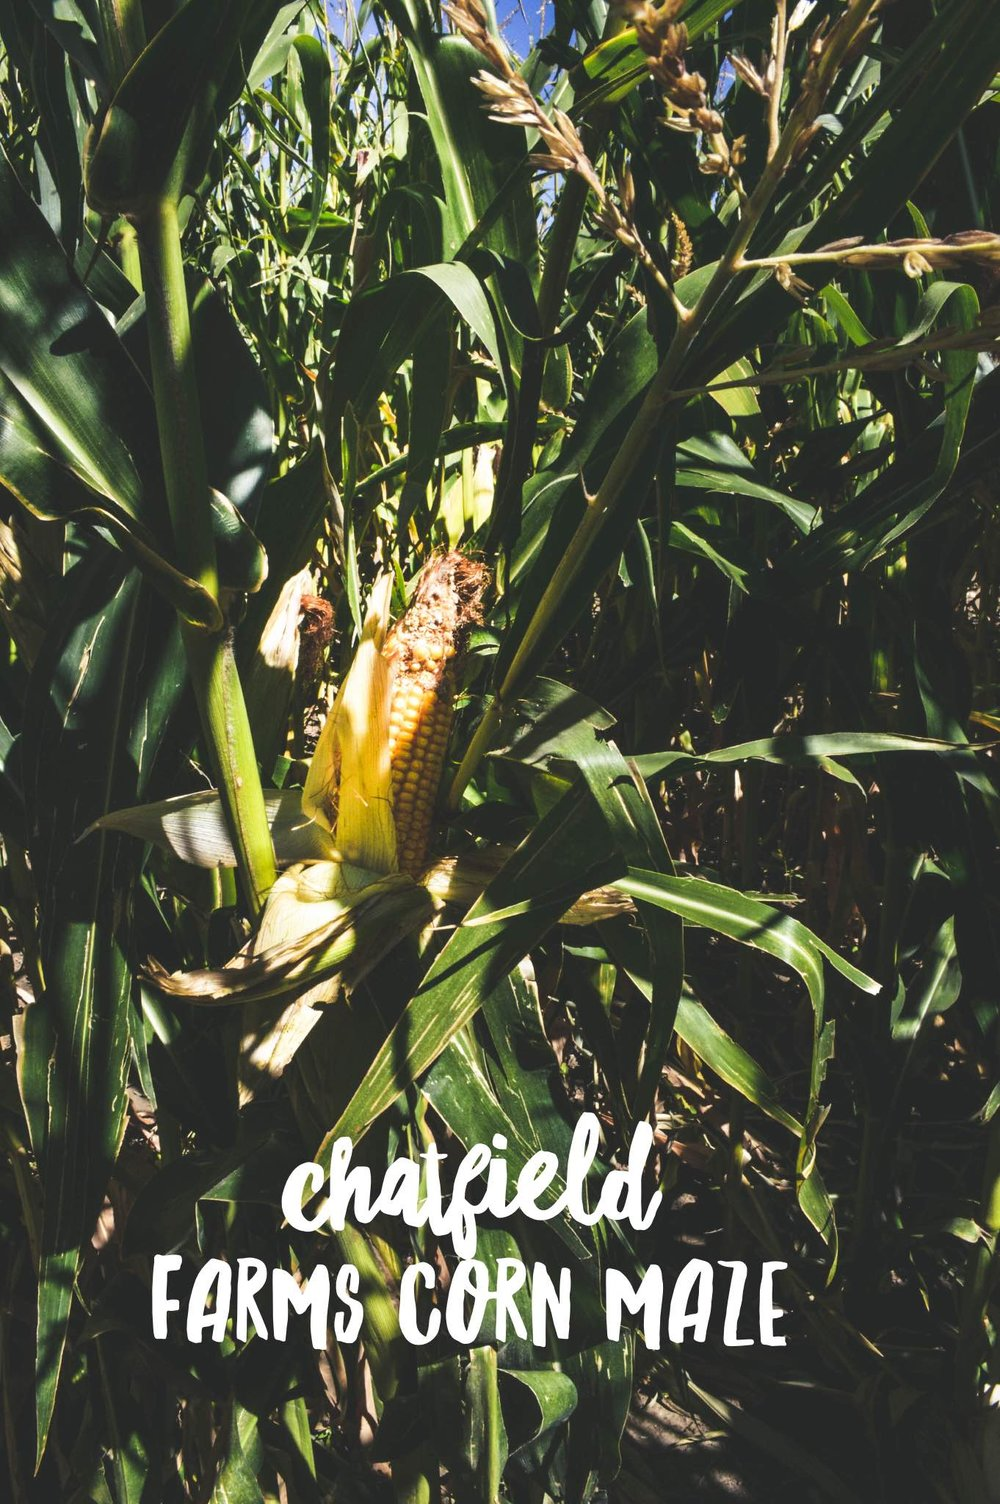 Chatfield Farms Corn Maze + SaltWaterVibes